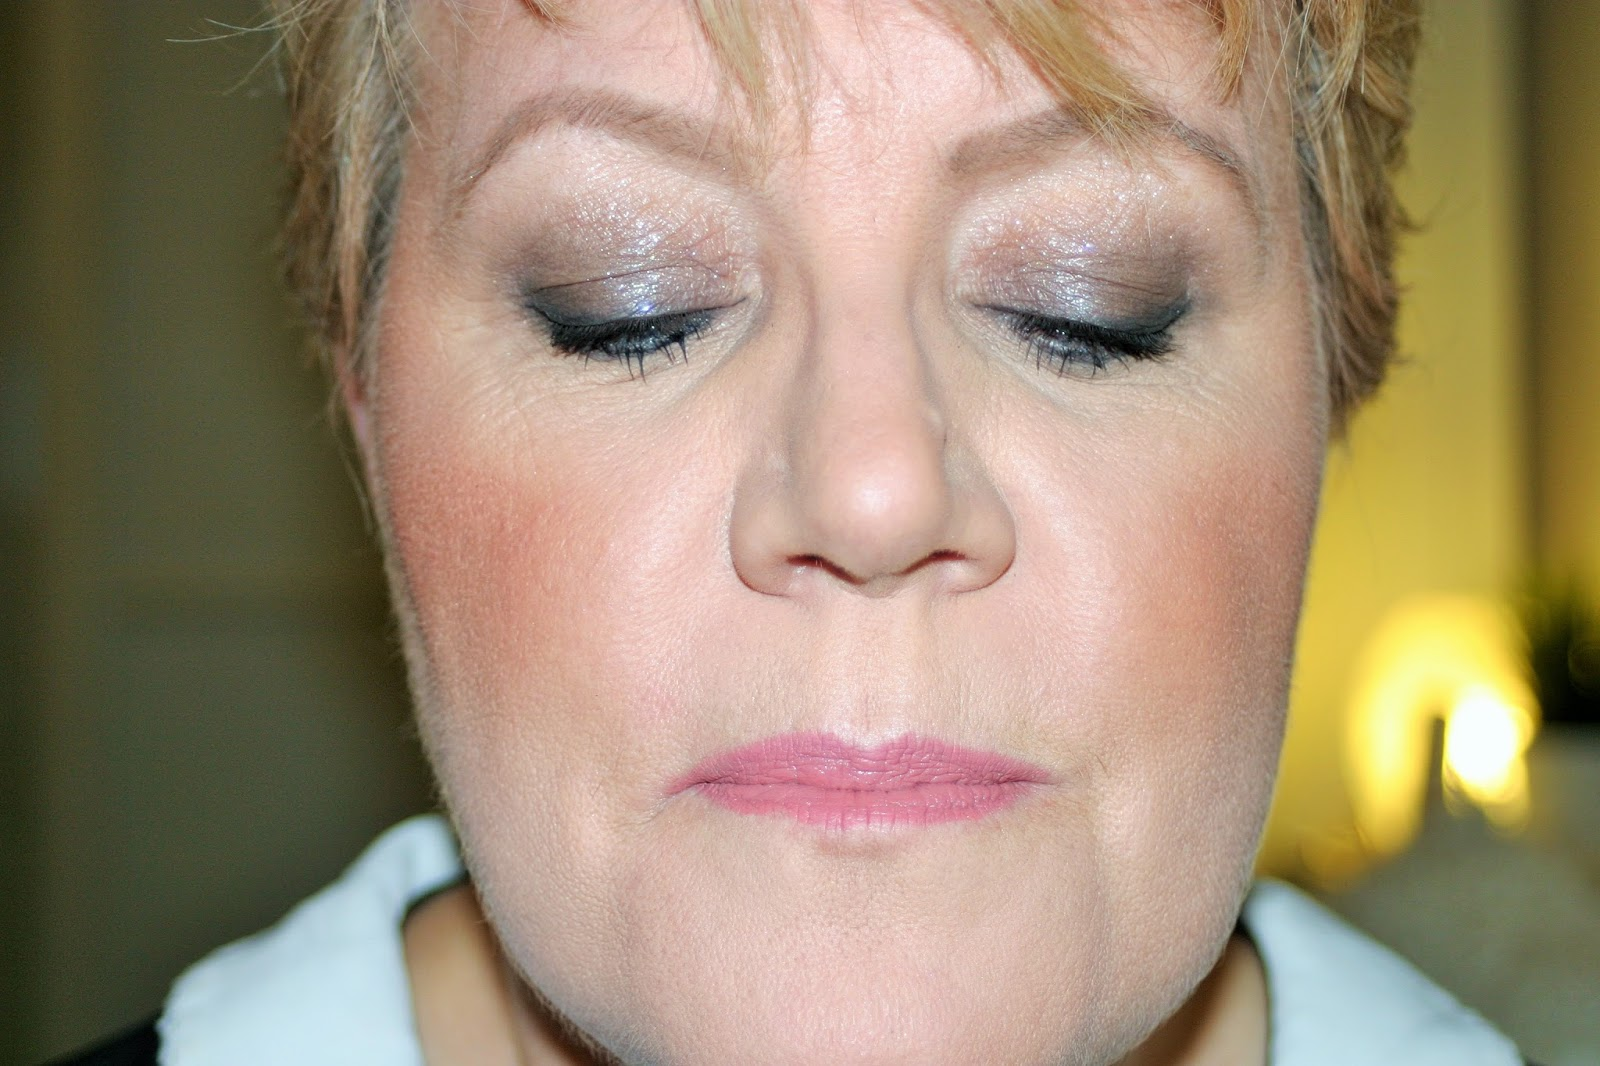 Smokey eye mature skin